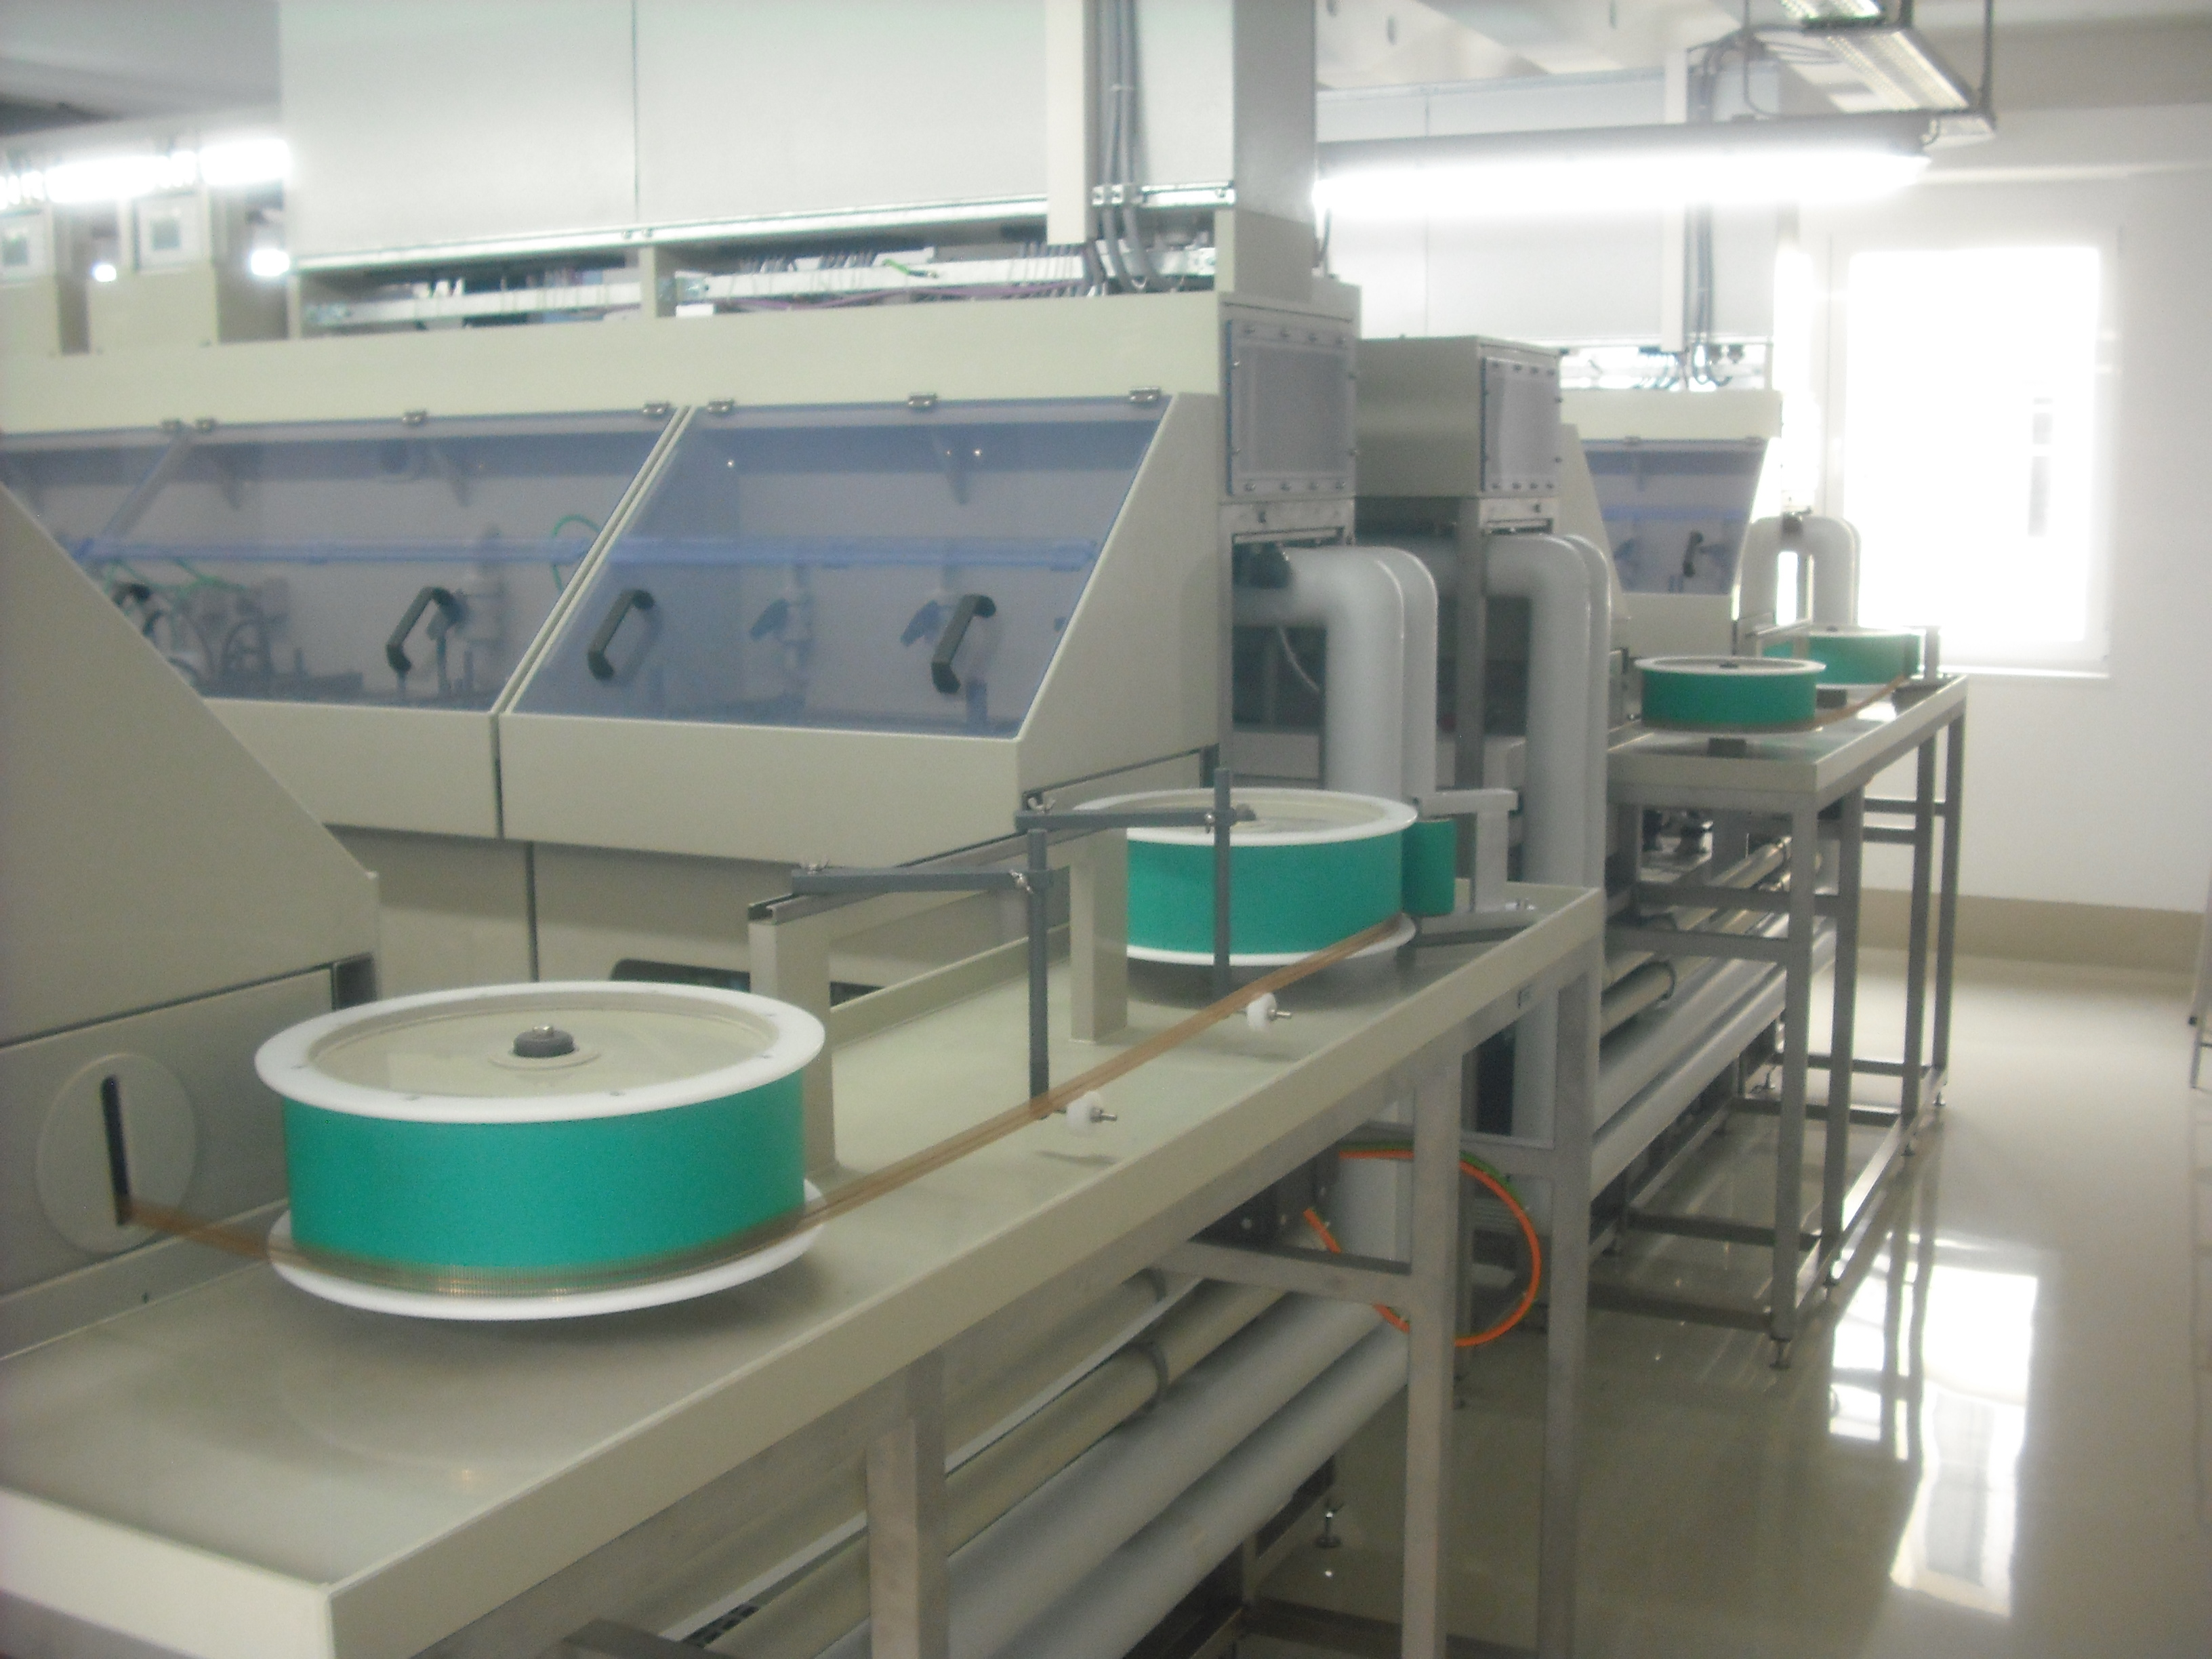 Reel-to-reel electroplating lines